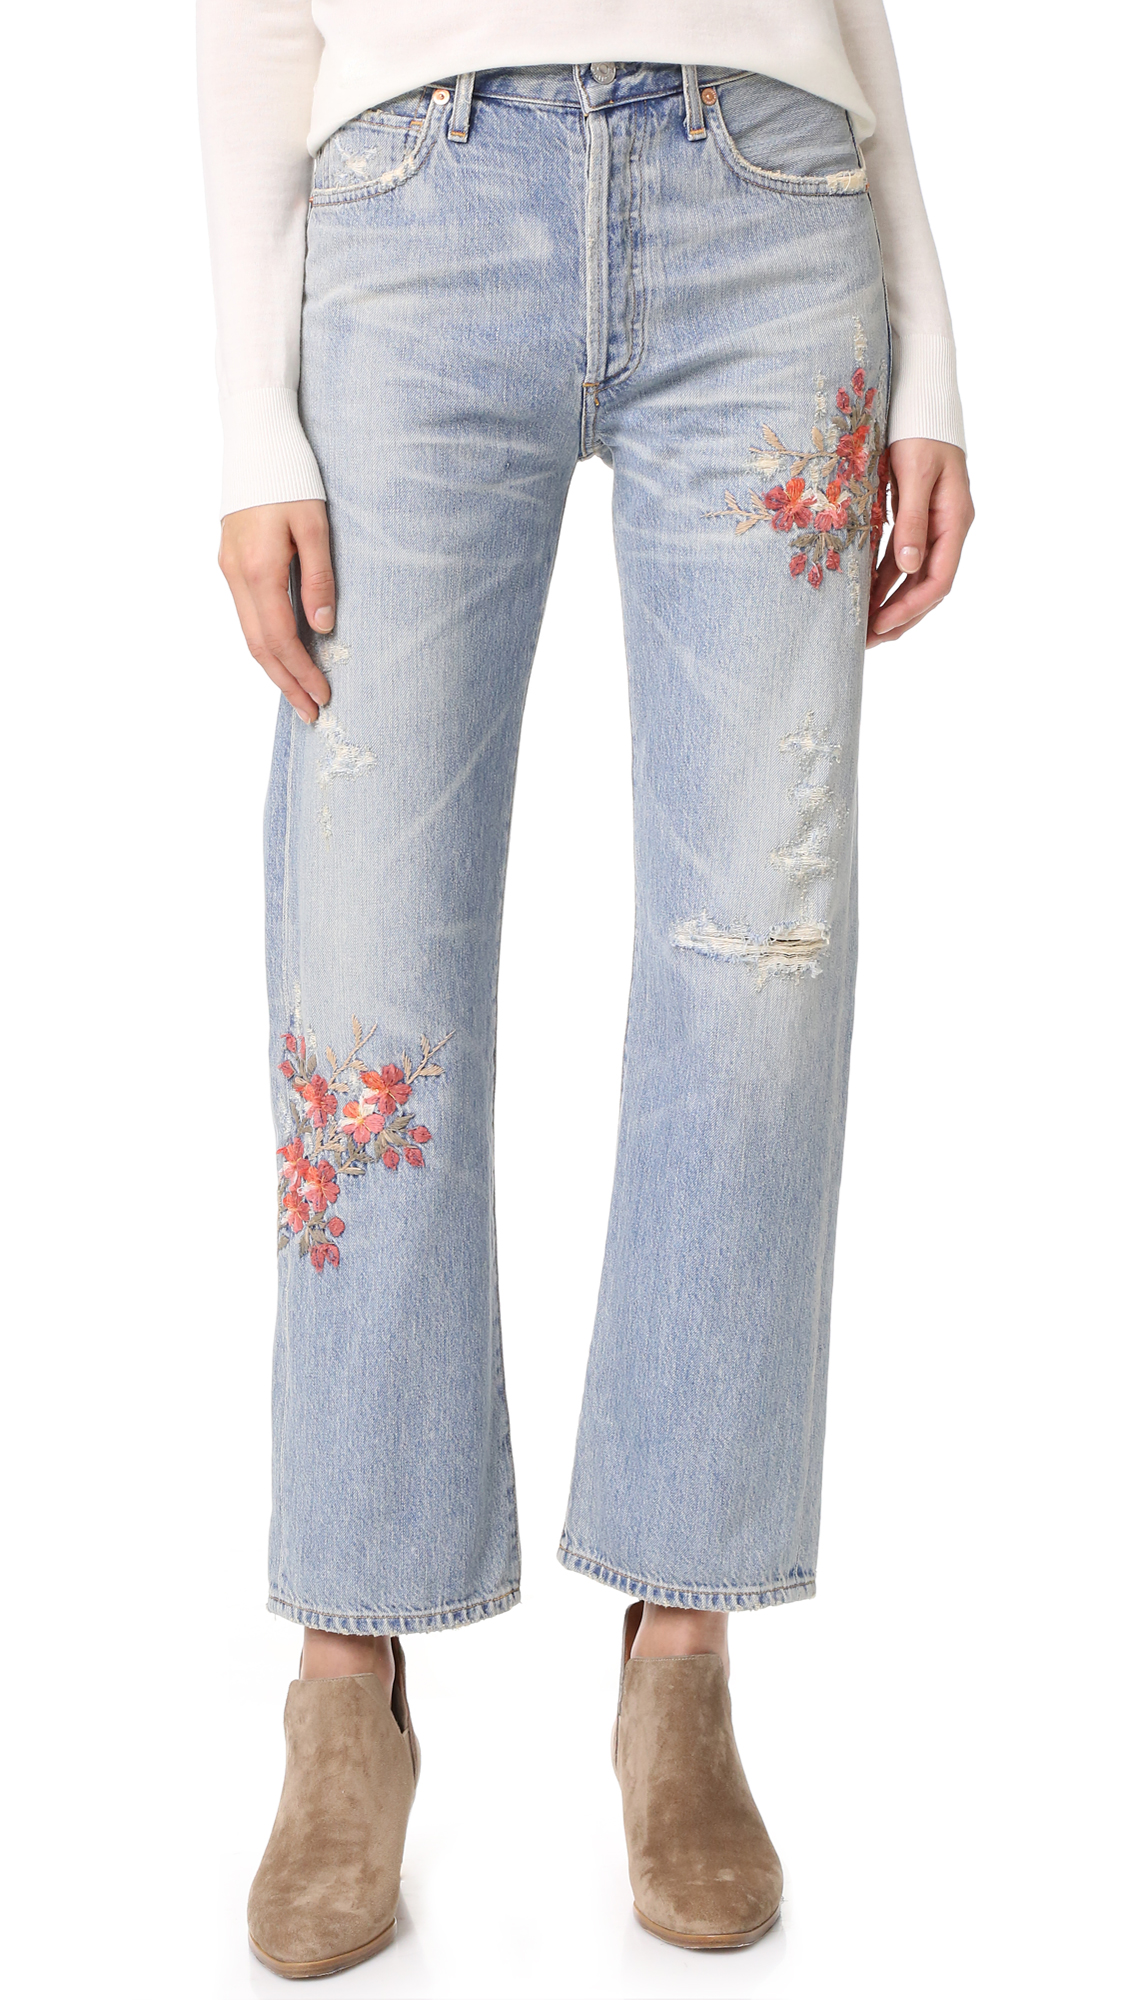 Citizens Of Humanity Cora High Rise Relaxed Crop Jeans - Cherry Blossom at Shopbop